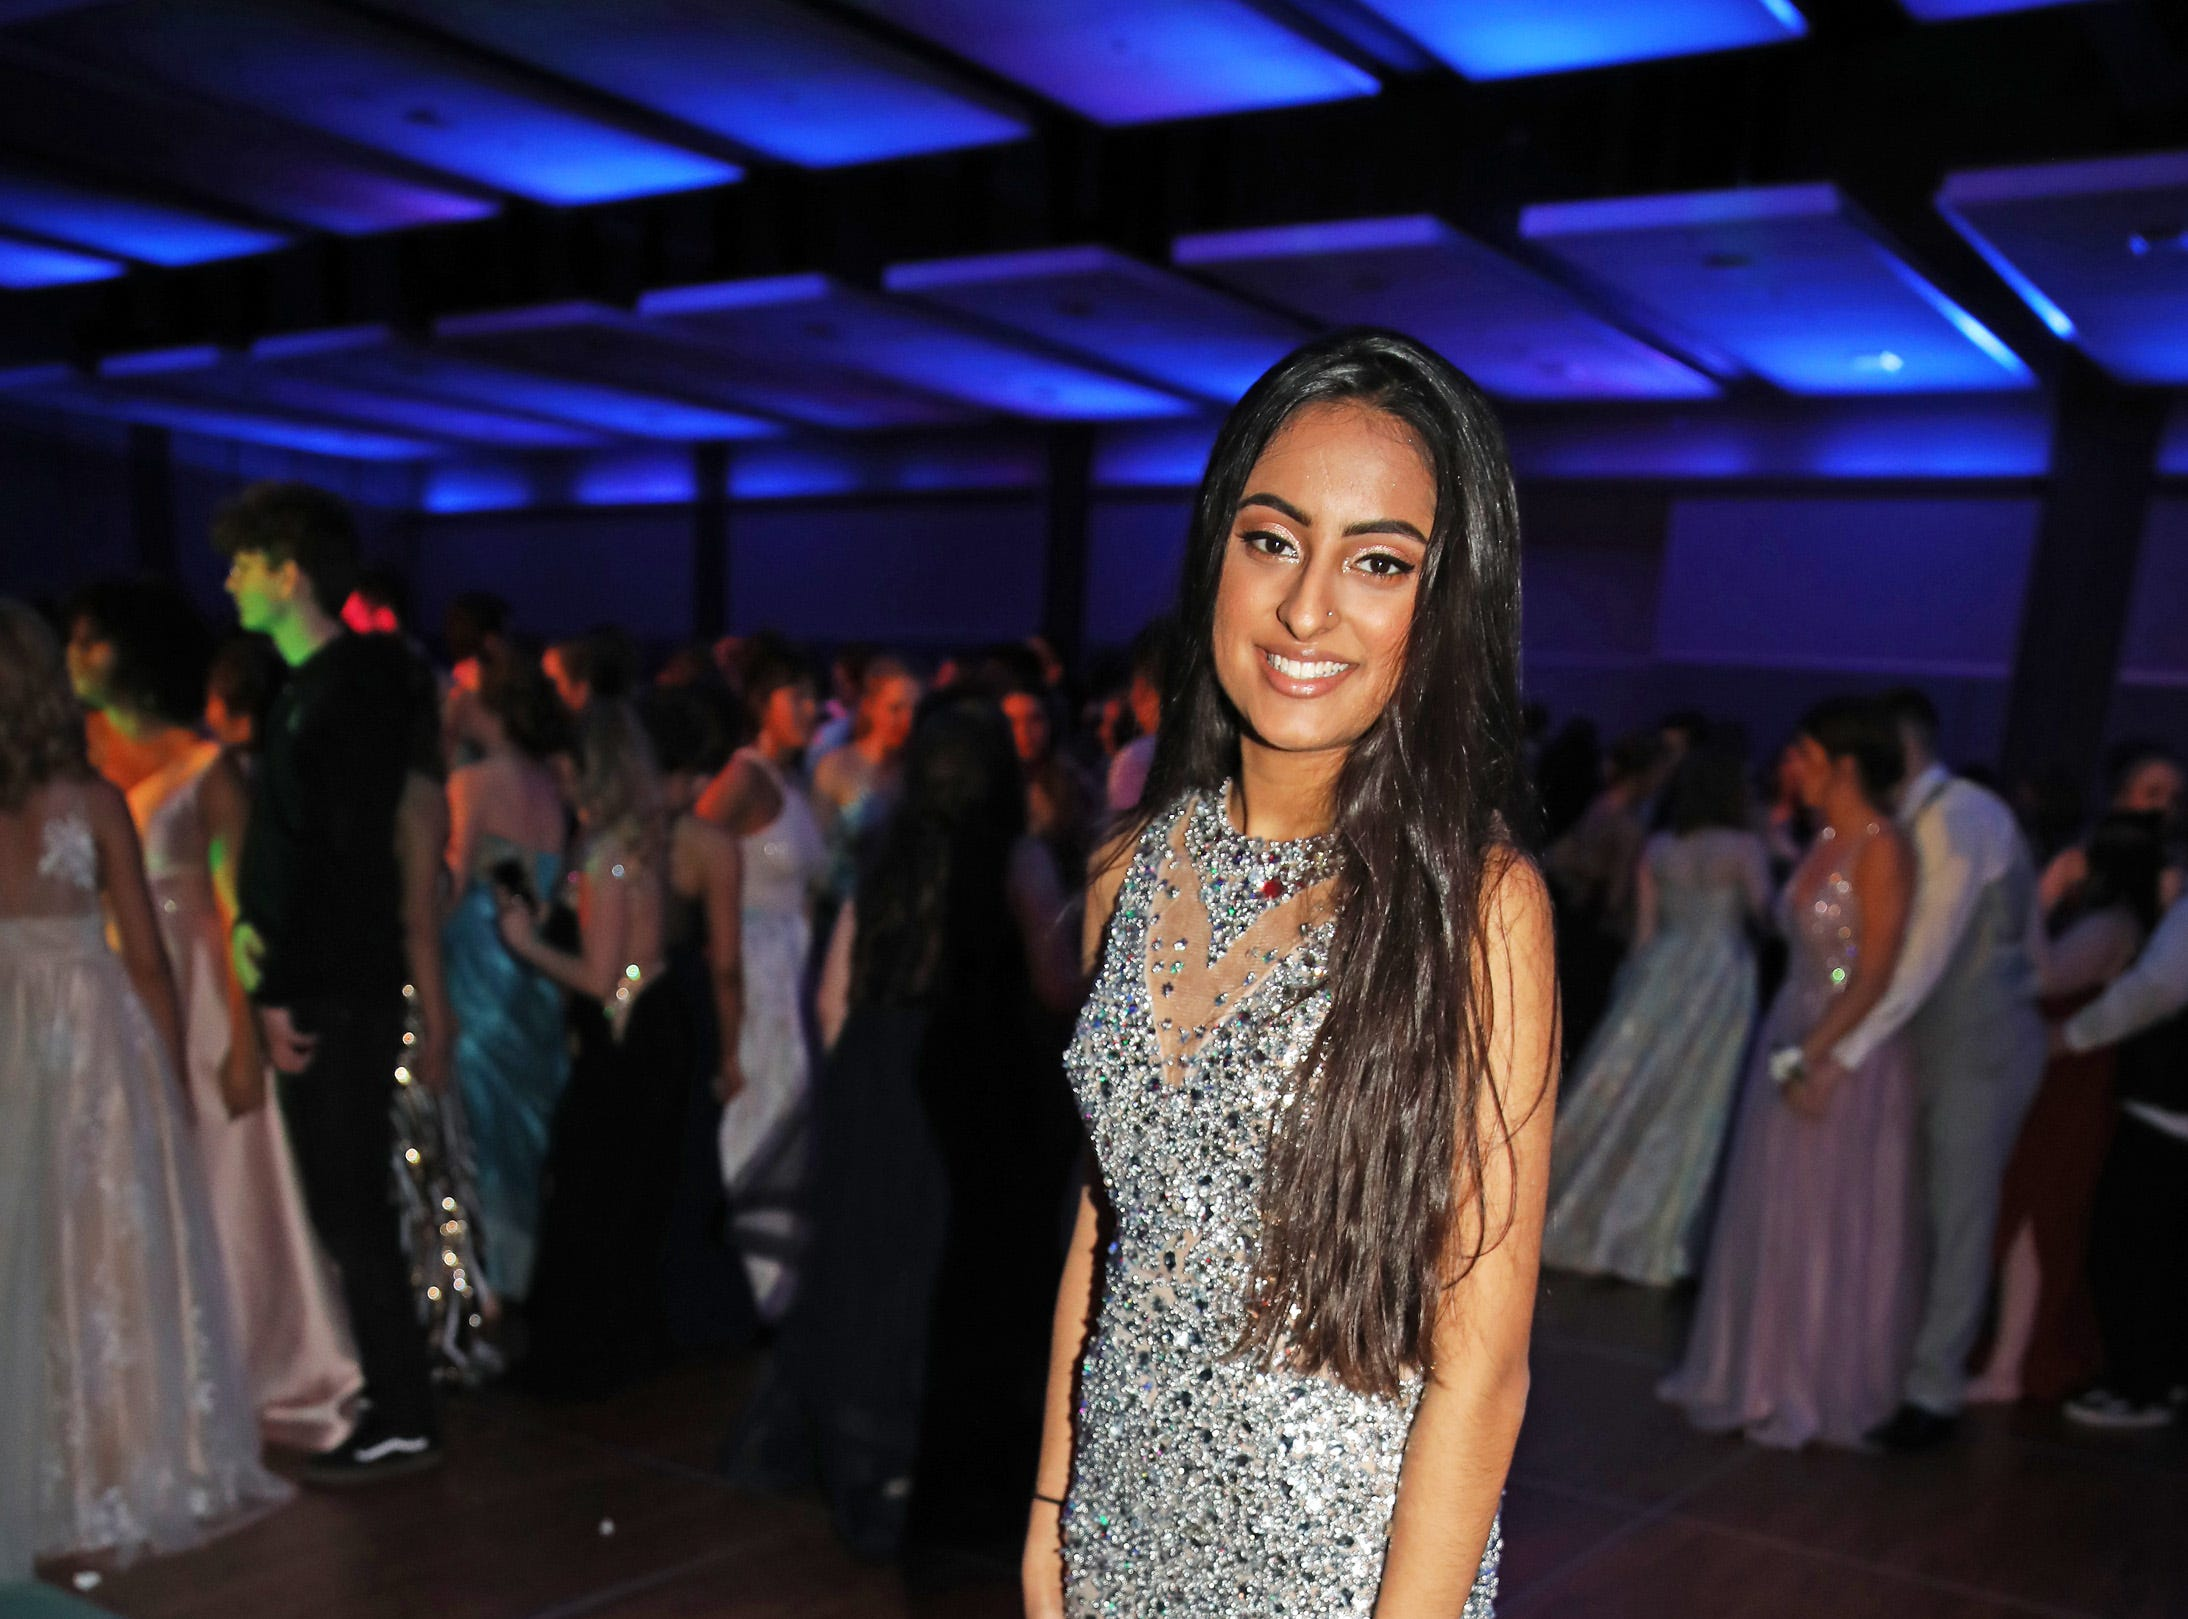 Junior Harkiran Ballagan heads to the dance floor at the Waukee High School Prom at the Ron Pearson Center in West Des Moines on Saturday, April 6, 2019.